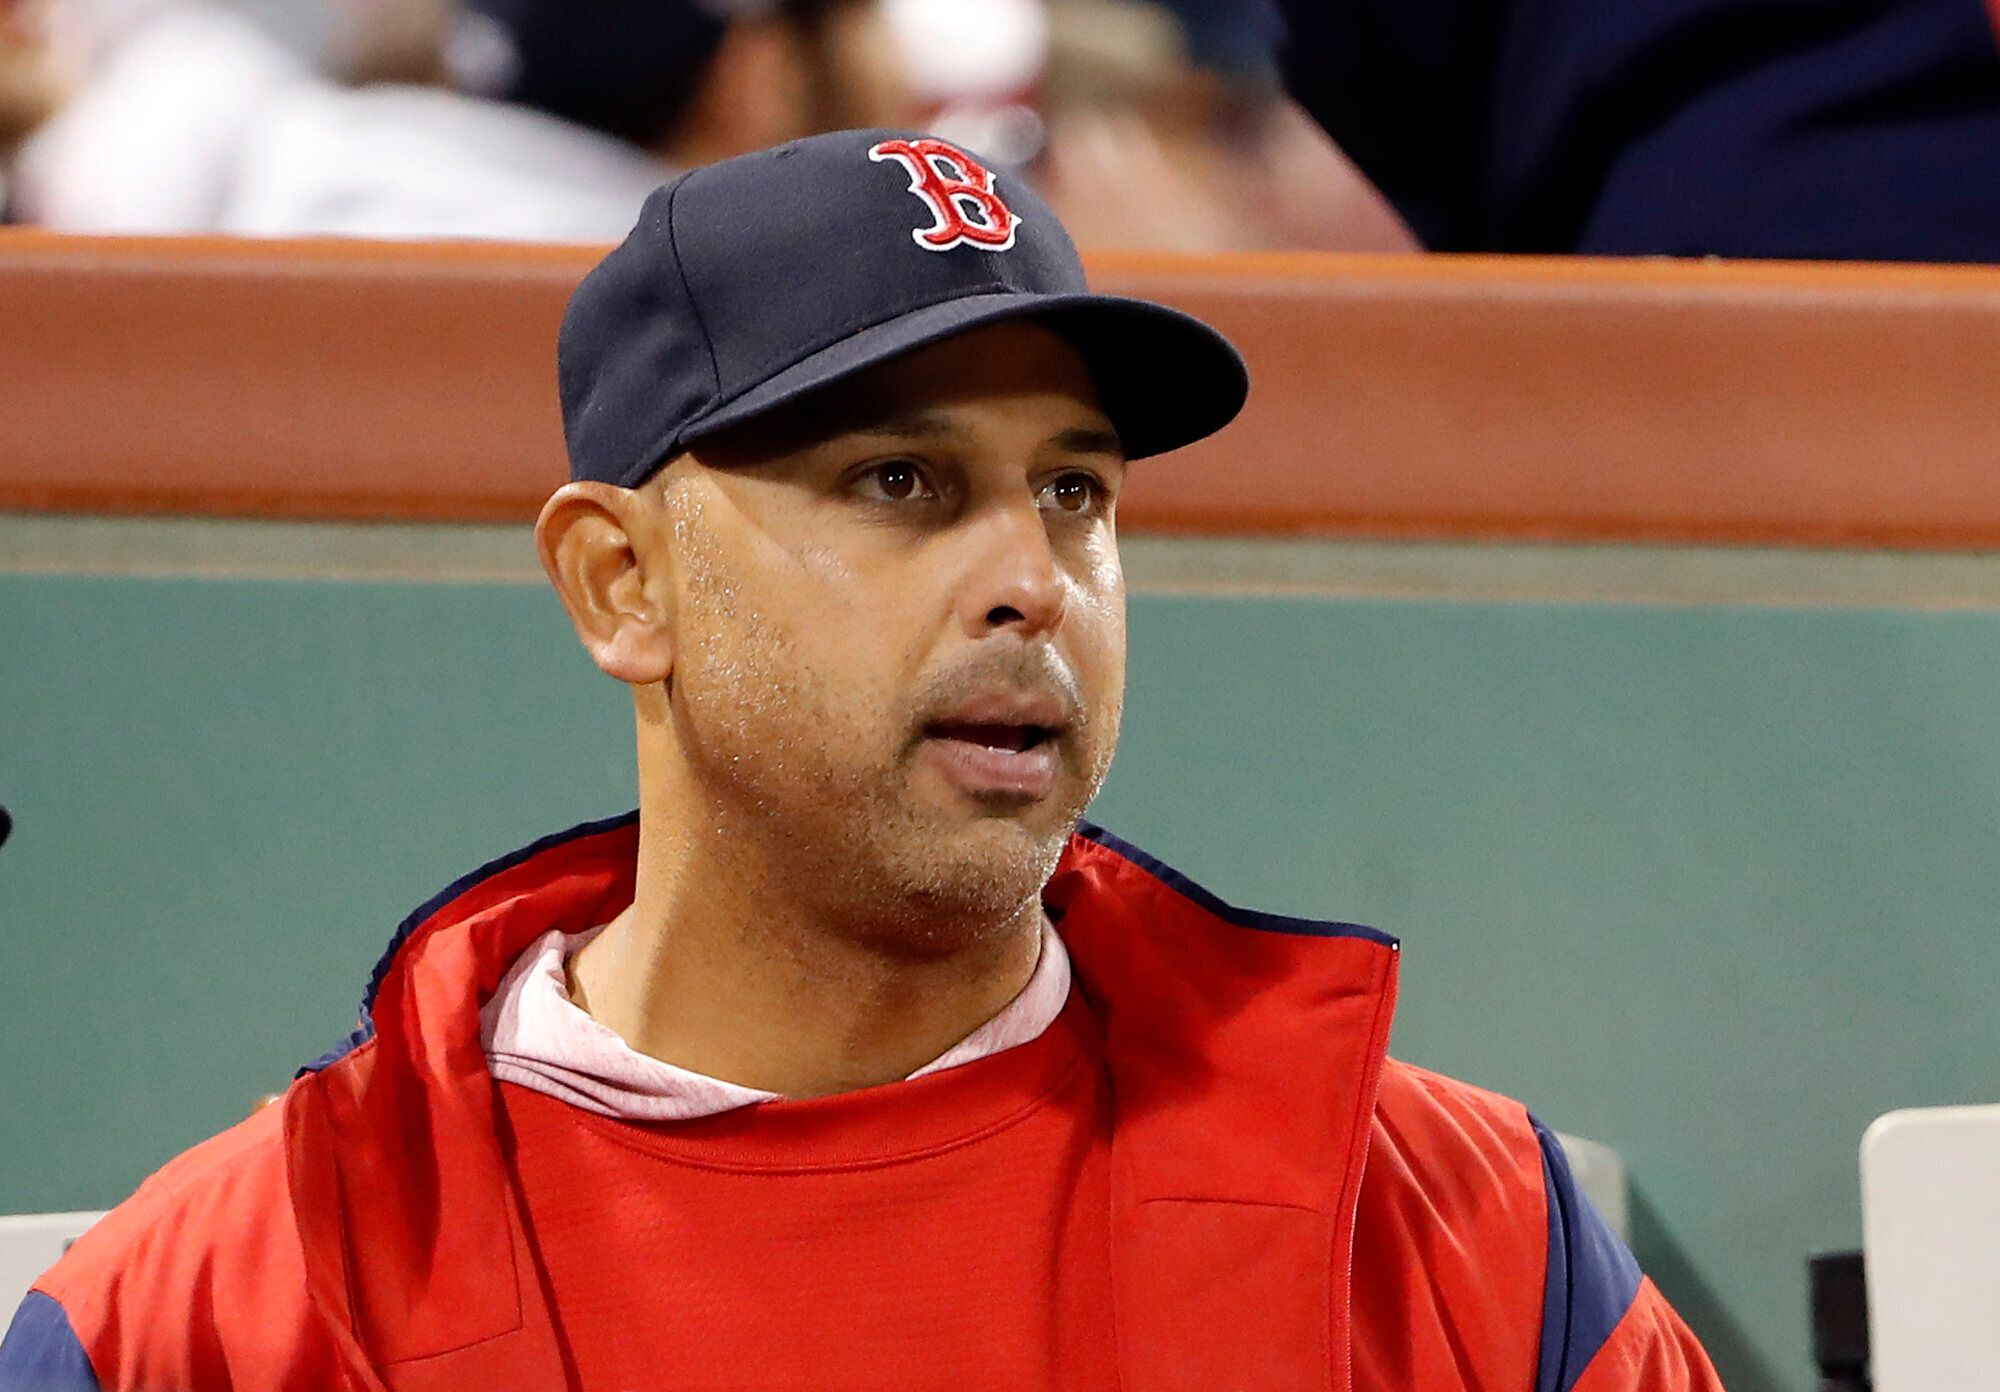 Boston Red Sox manager Alex Cora in the dugout during the fifth inning of a baseball game against the Toronto Blue Jays, Thursday, April 11, 2019, at Fenway Park in Boston. (AP Photo/Winslow Townson)